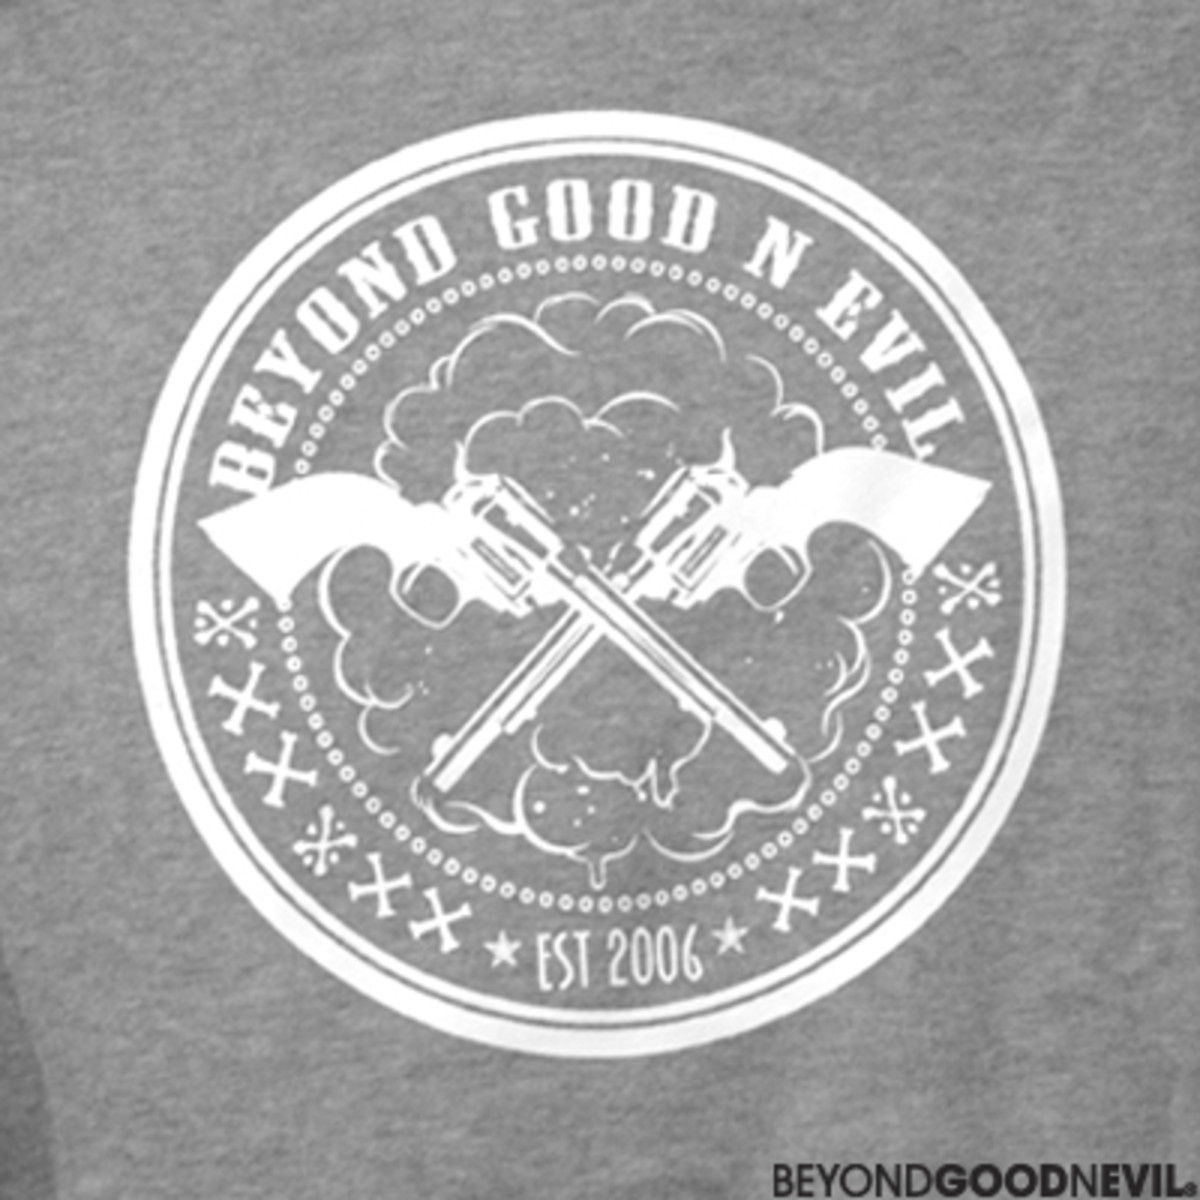 Beyond Good N Evil - New Collection - 4